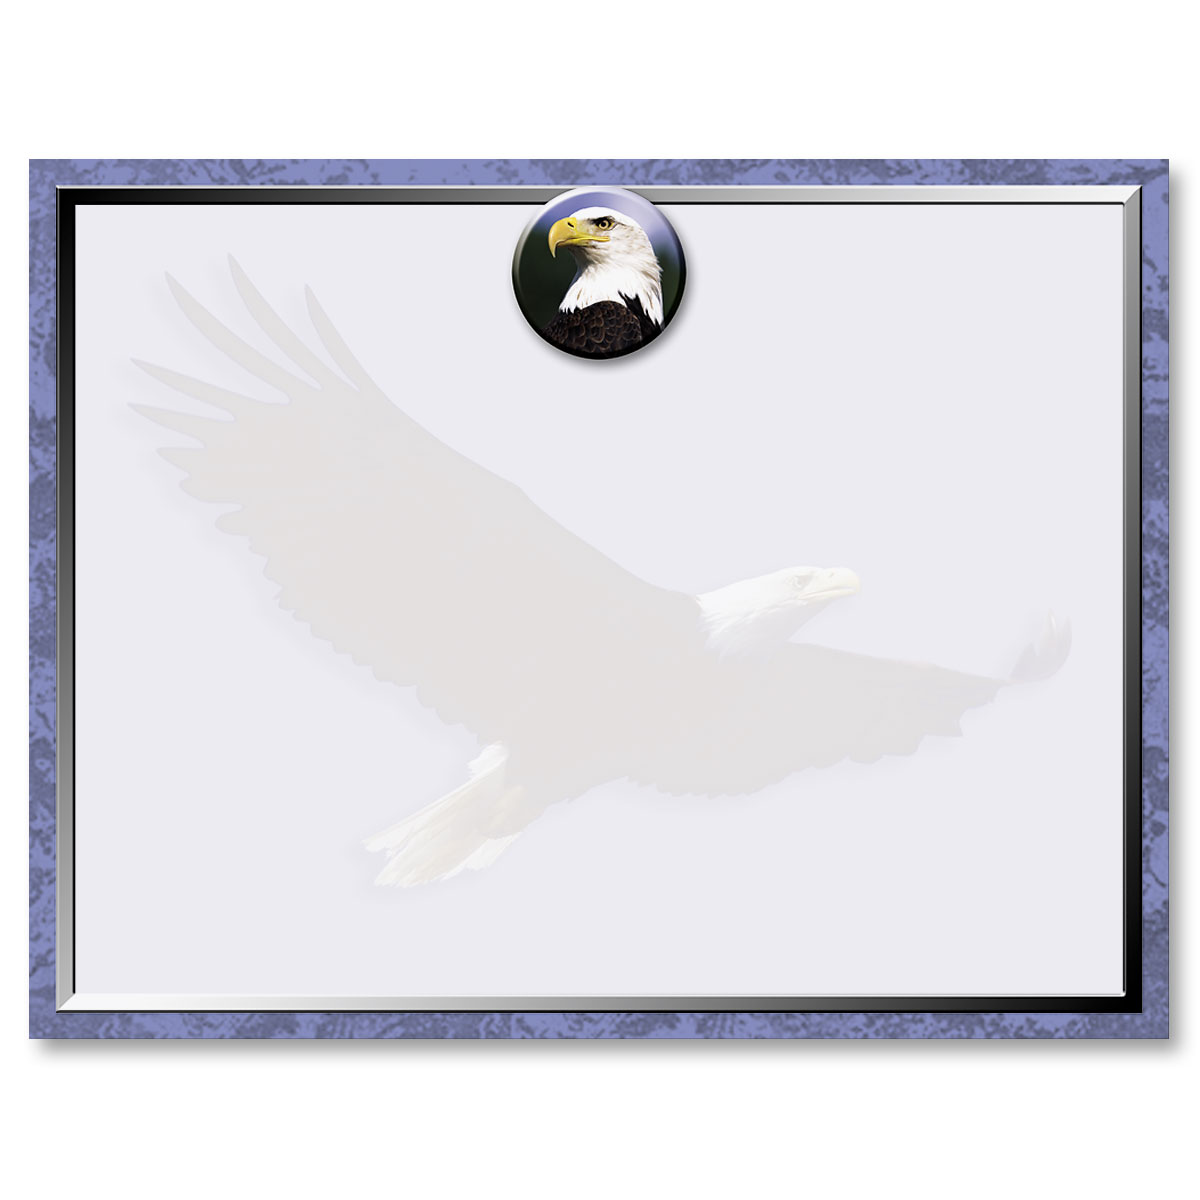 Specialty certificates paperdirects soaring eagle photoimage certificates yadclub Gallery